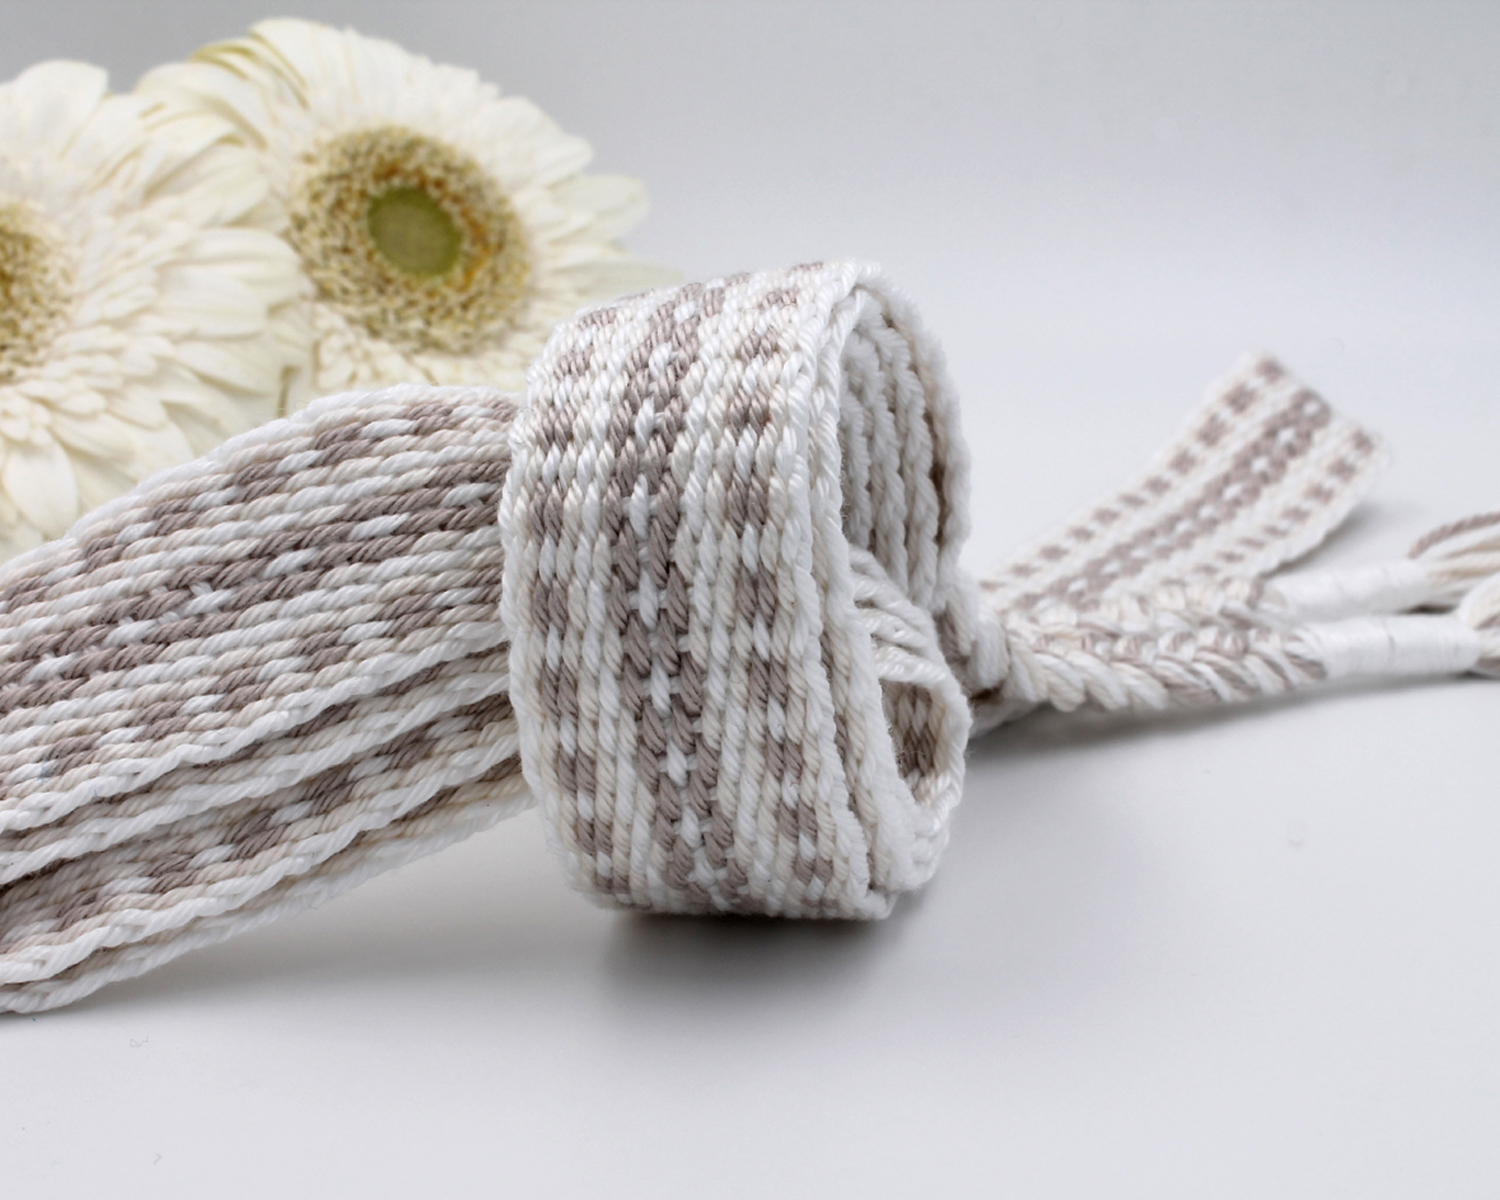 Handfasting Cord - Holding Union  (7)